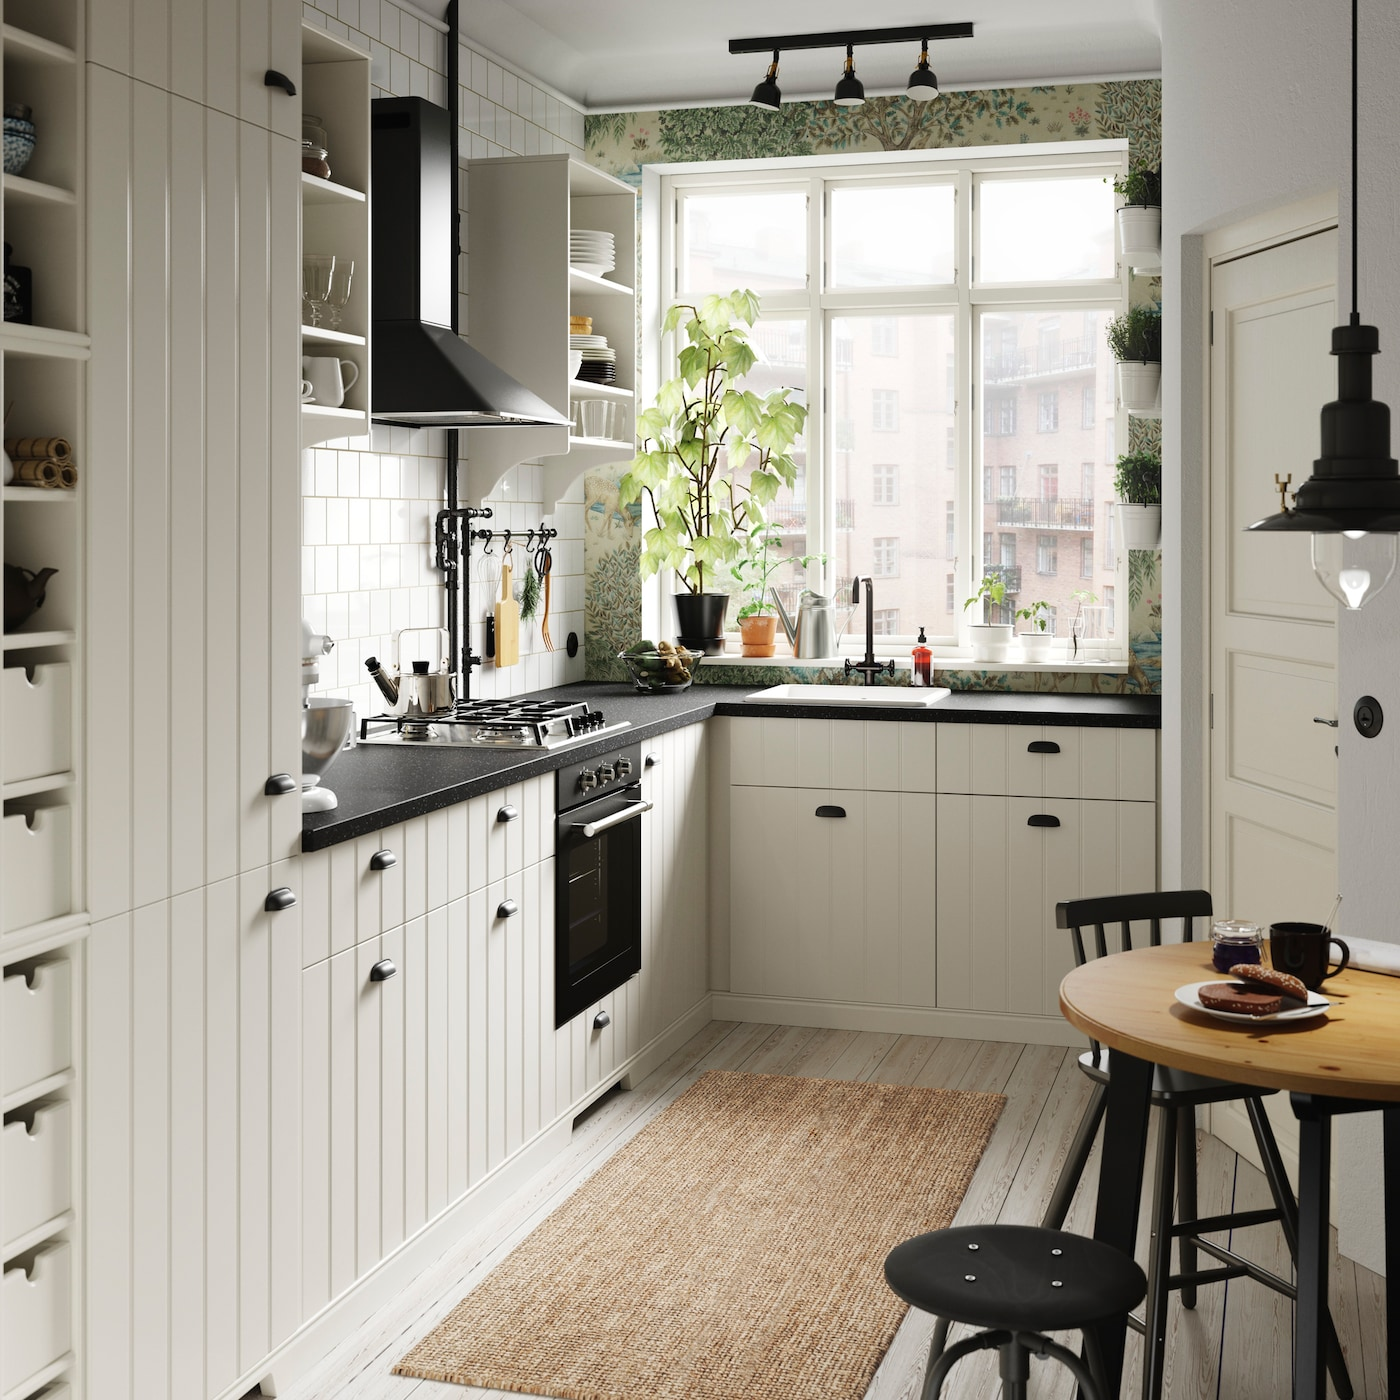 Create a cosy small kitchen or kitchenette with IKEA METOD HITTARP white paneled door fronts and TORNVIKEN off-white open storage shelves and wine racks.